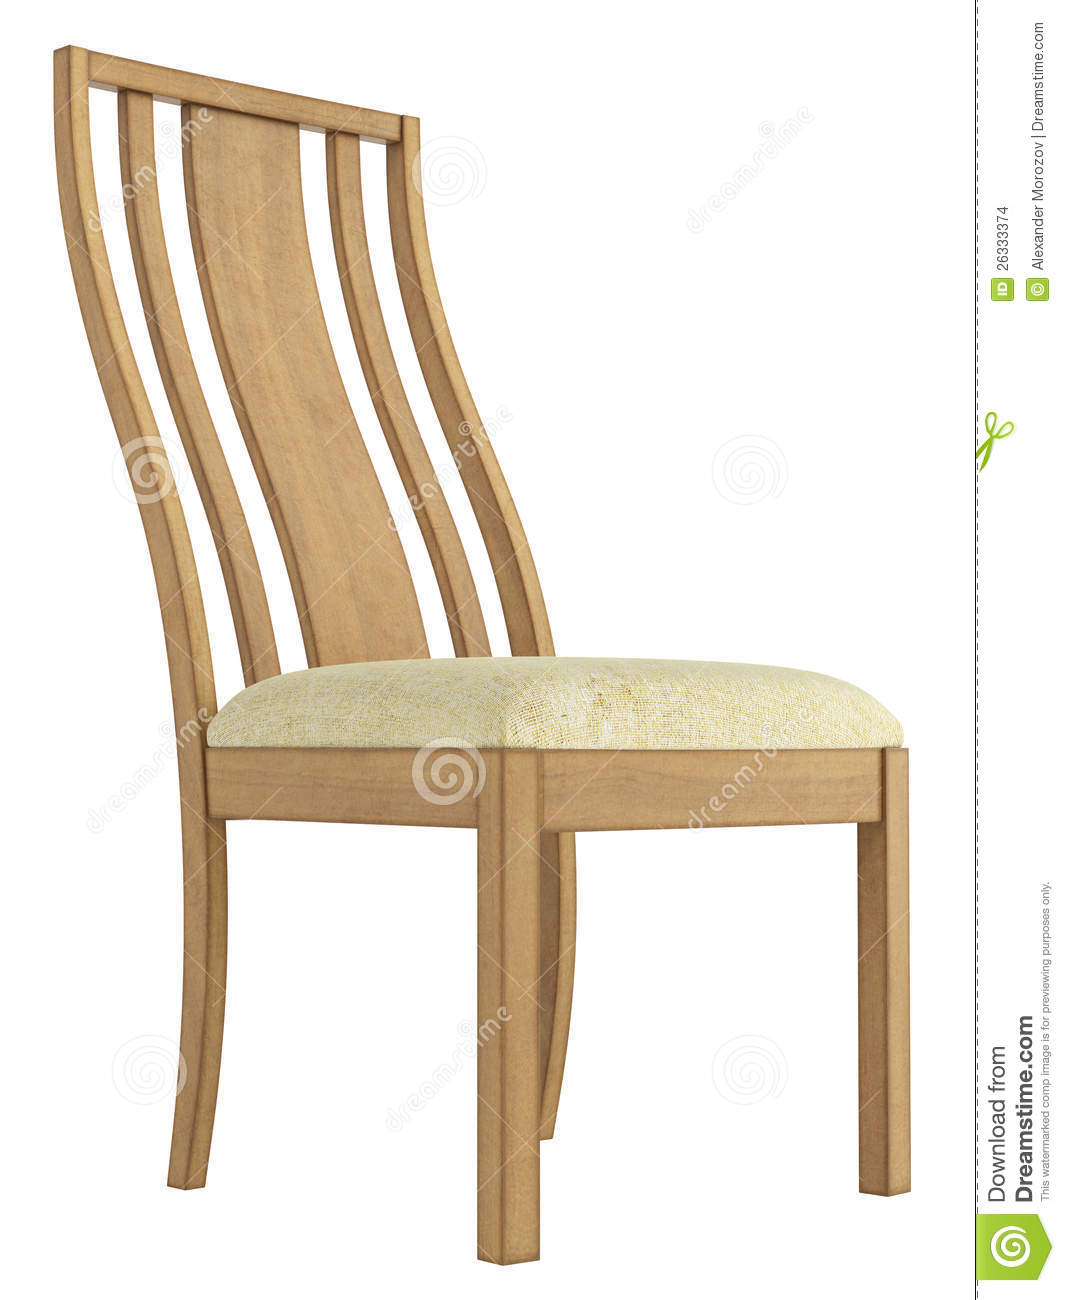 ... Stock Images Of Antique Wooden Chair : wicker rocking chair prices